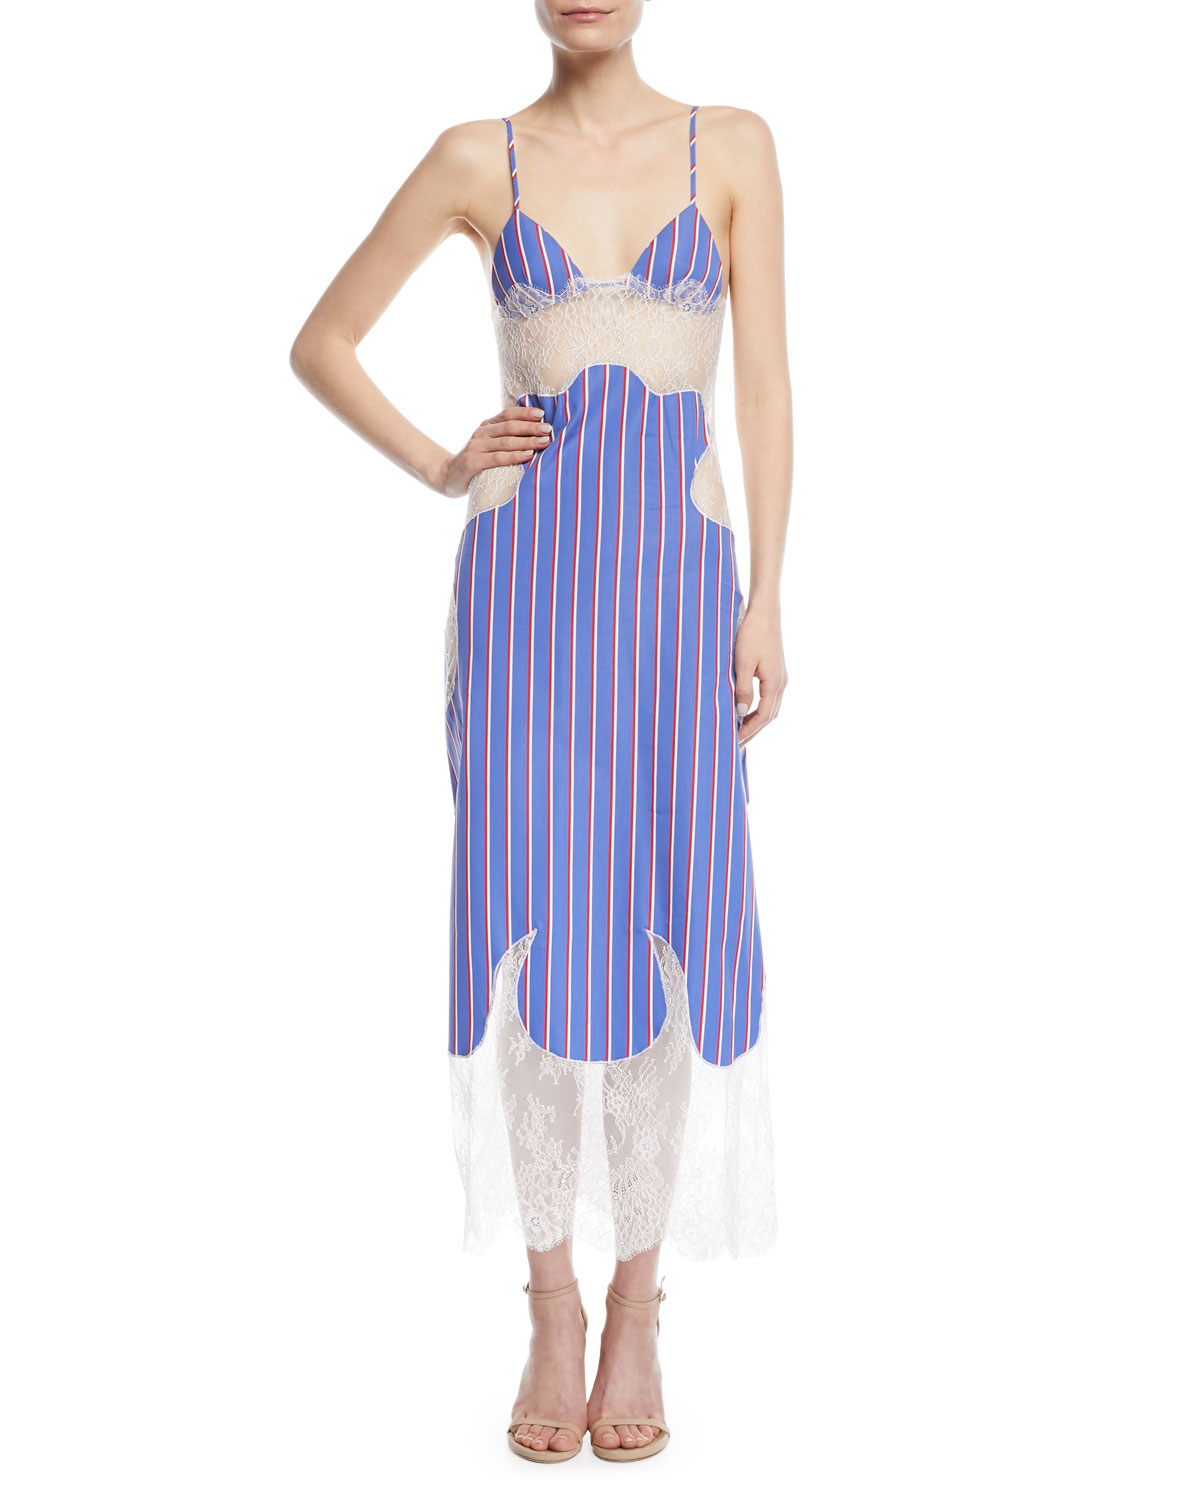 3787d36534e2 Off-White Striped Cotton and Lace Slip Dress